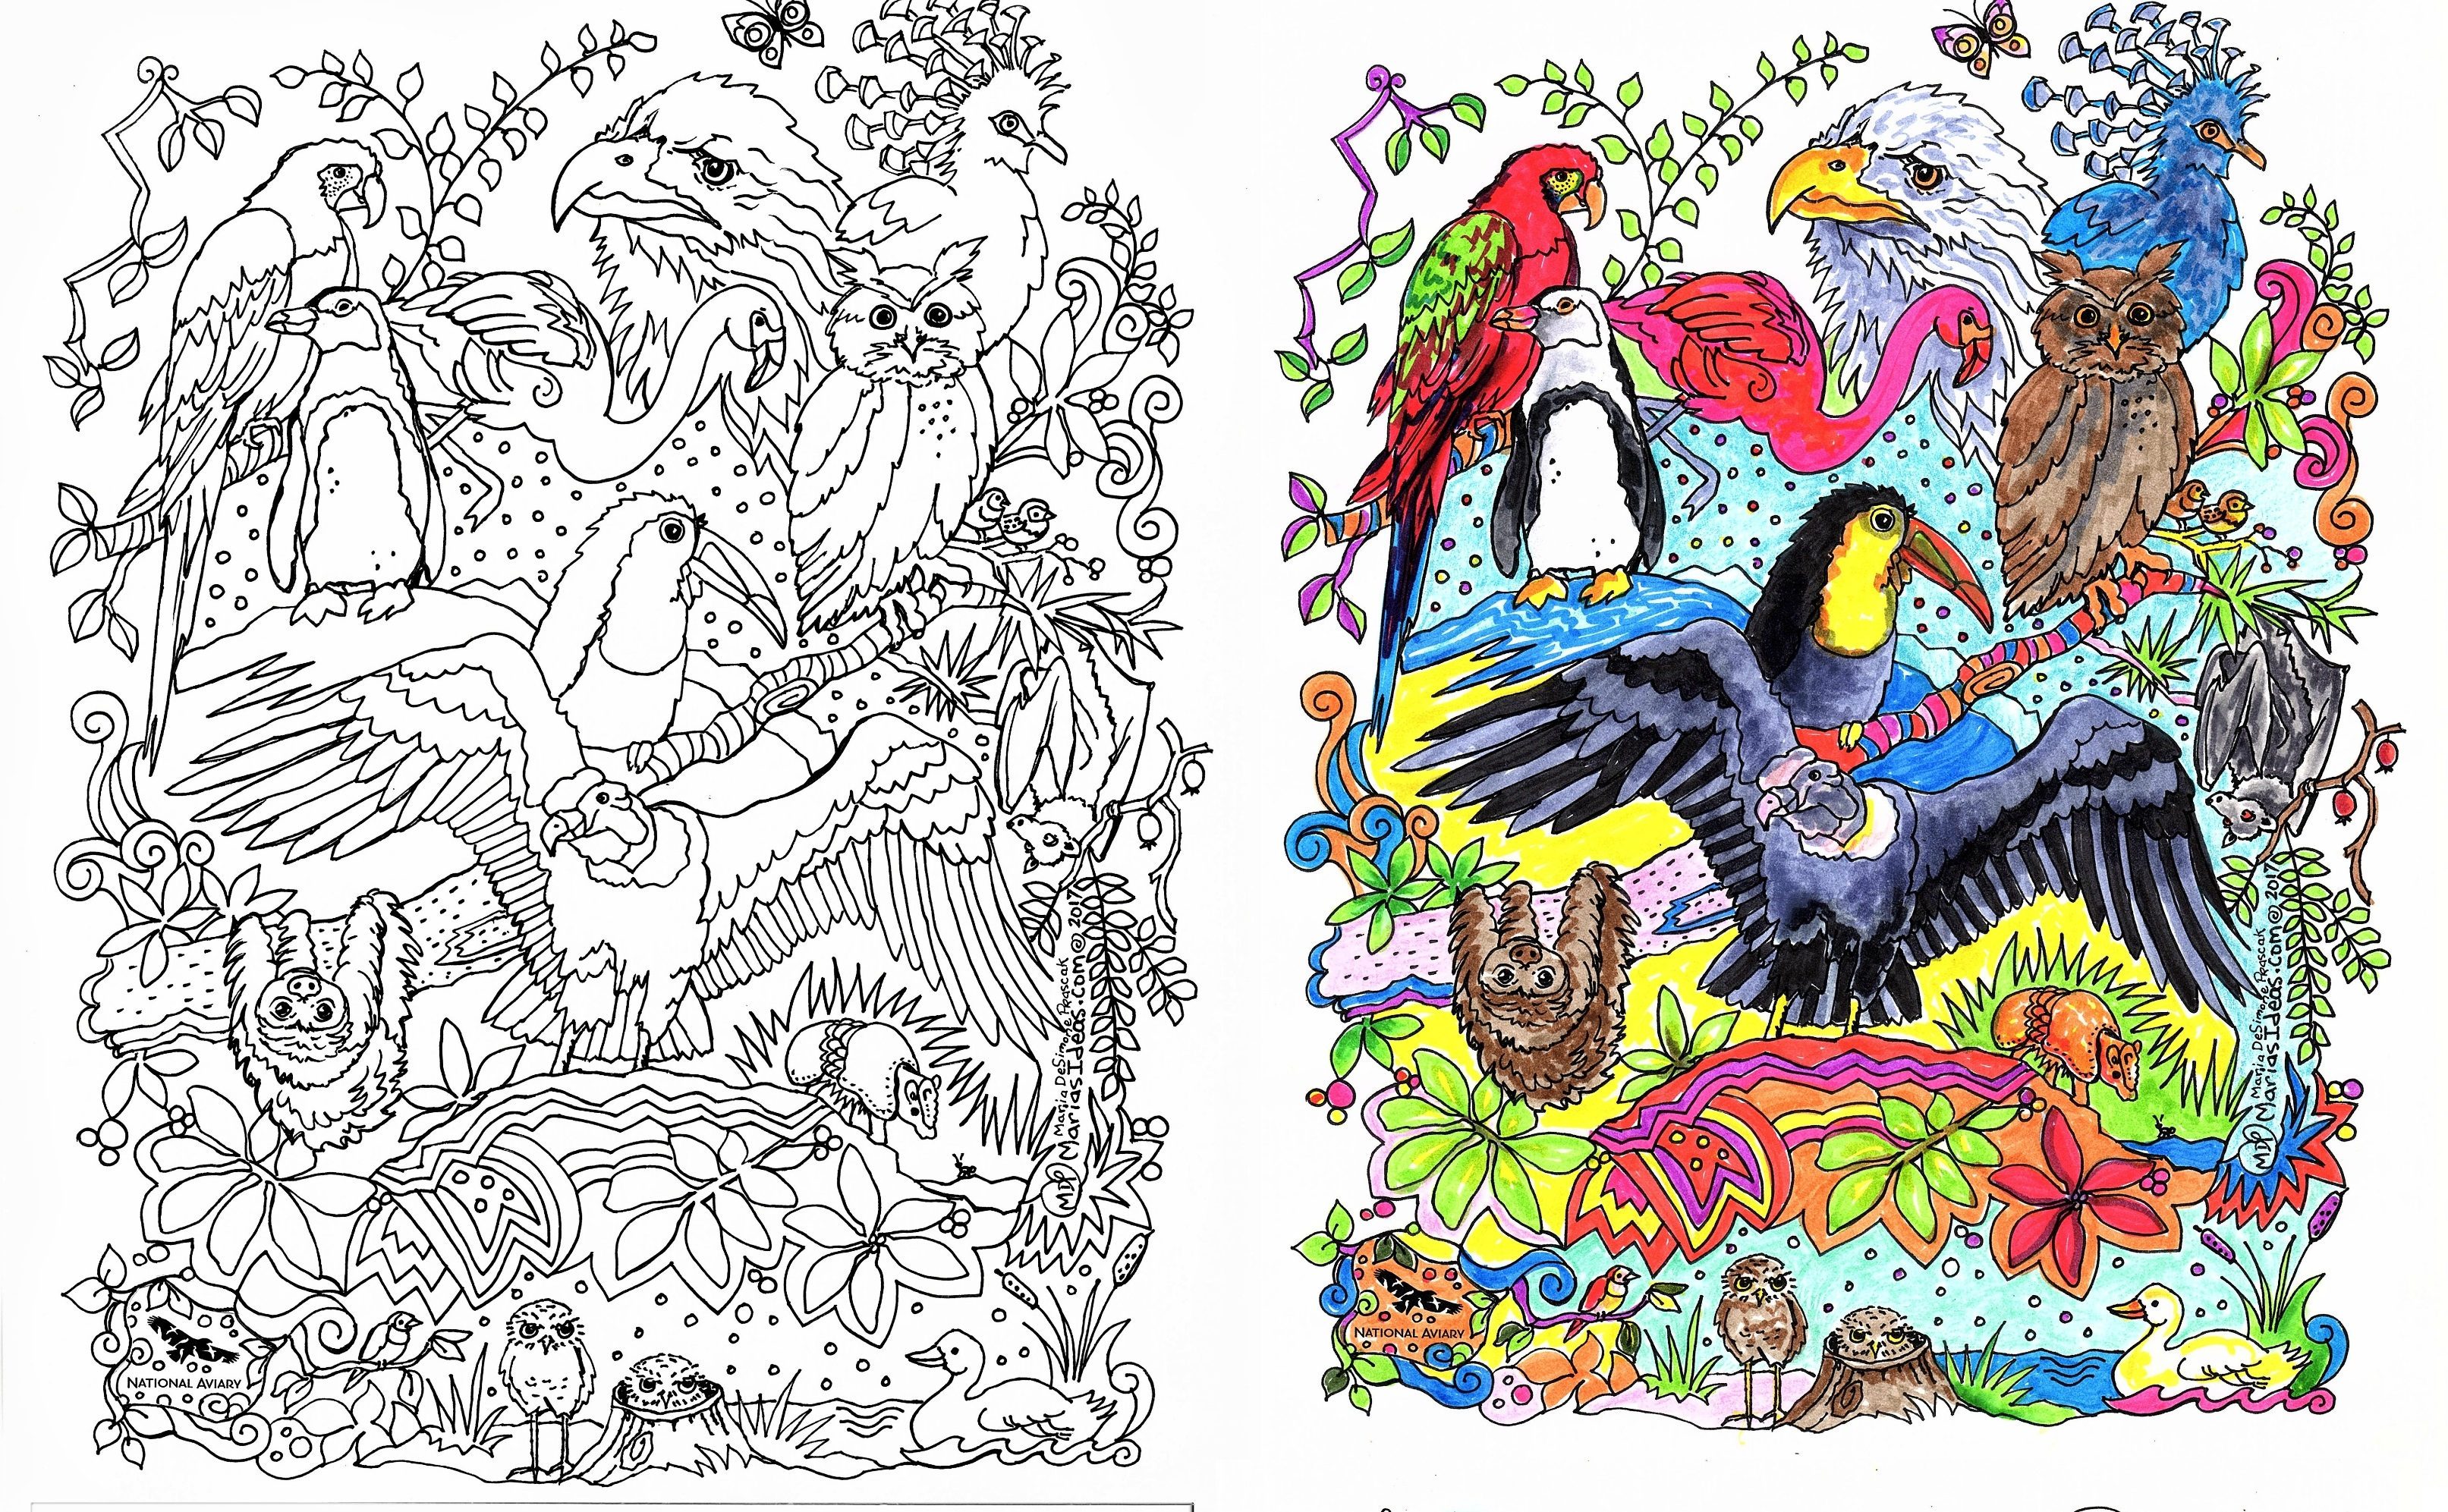 sloth coloring page, bird art, national aviary, marias ideas